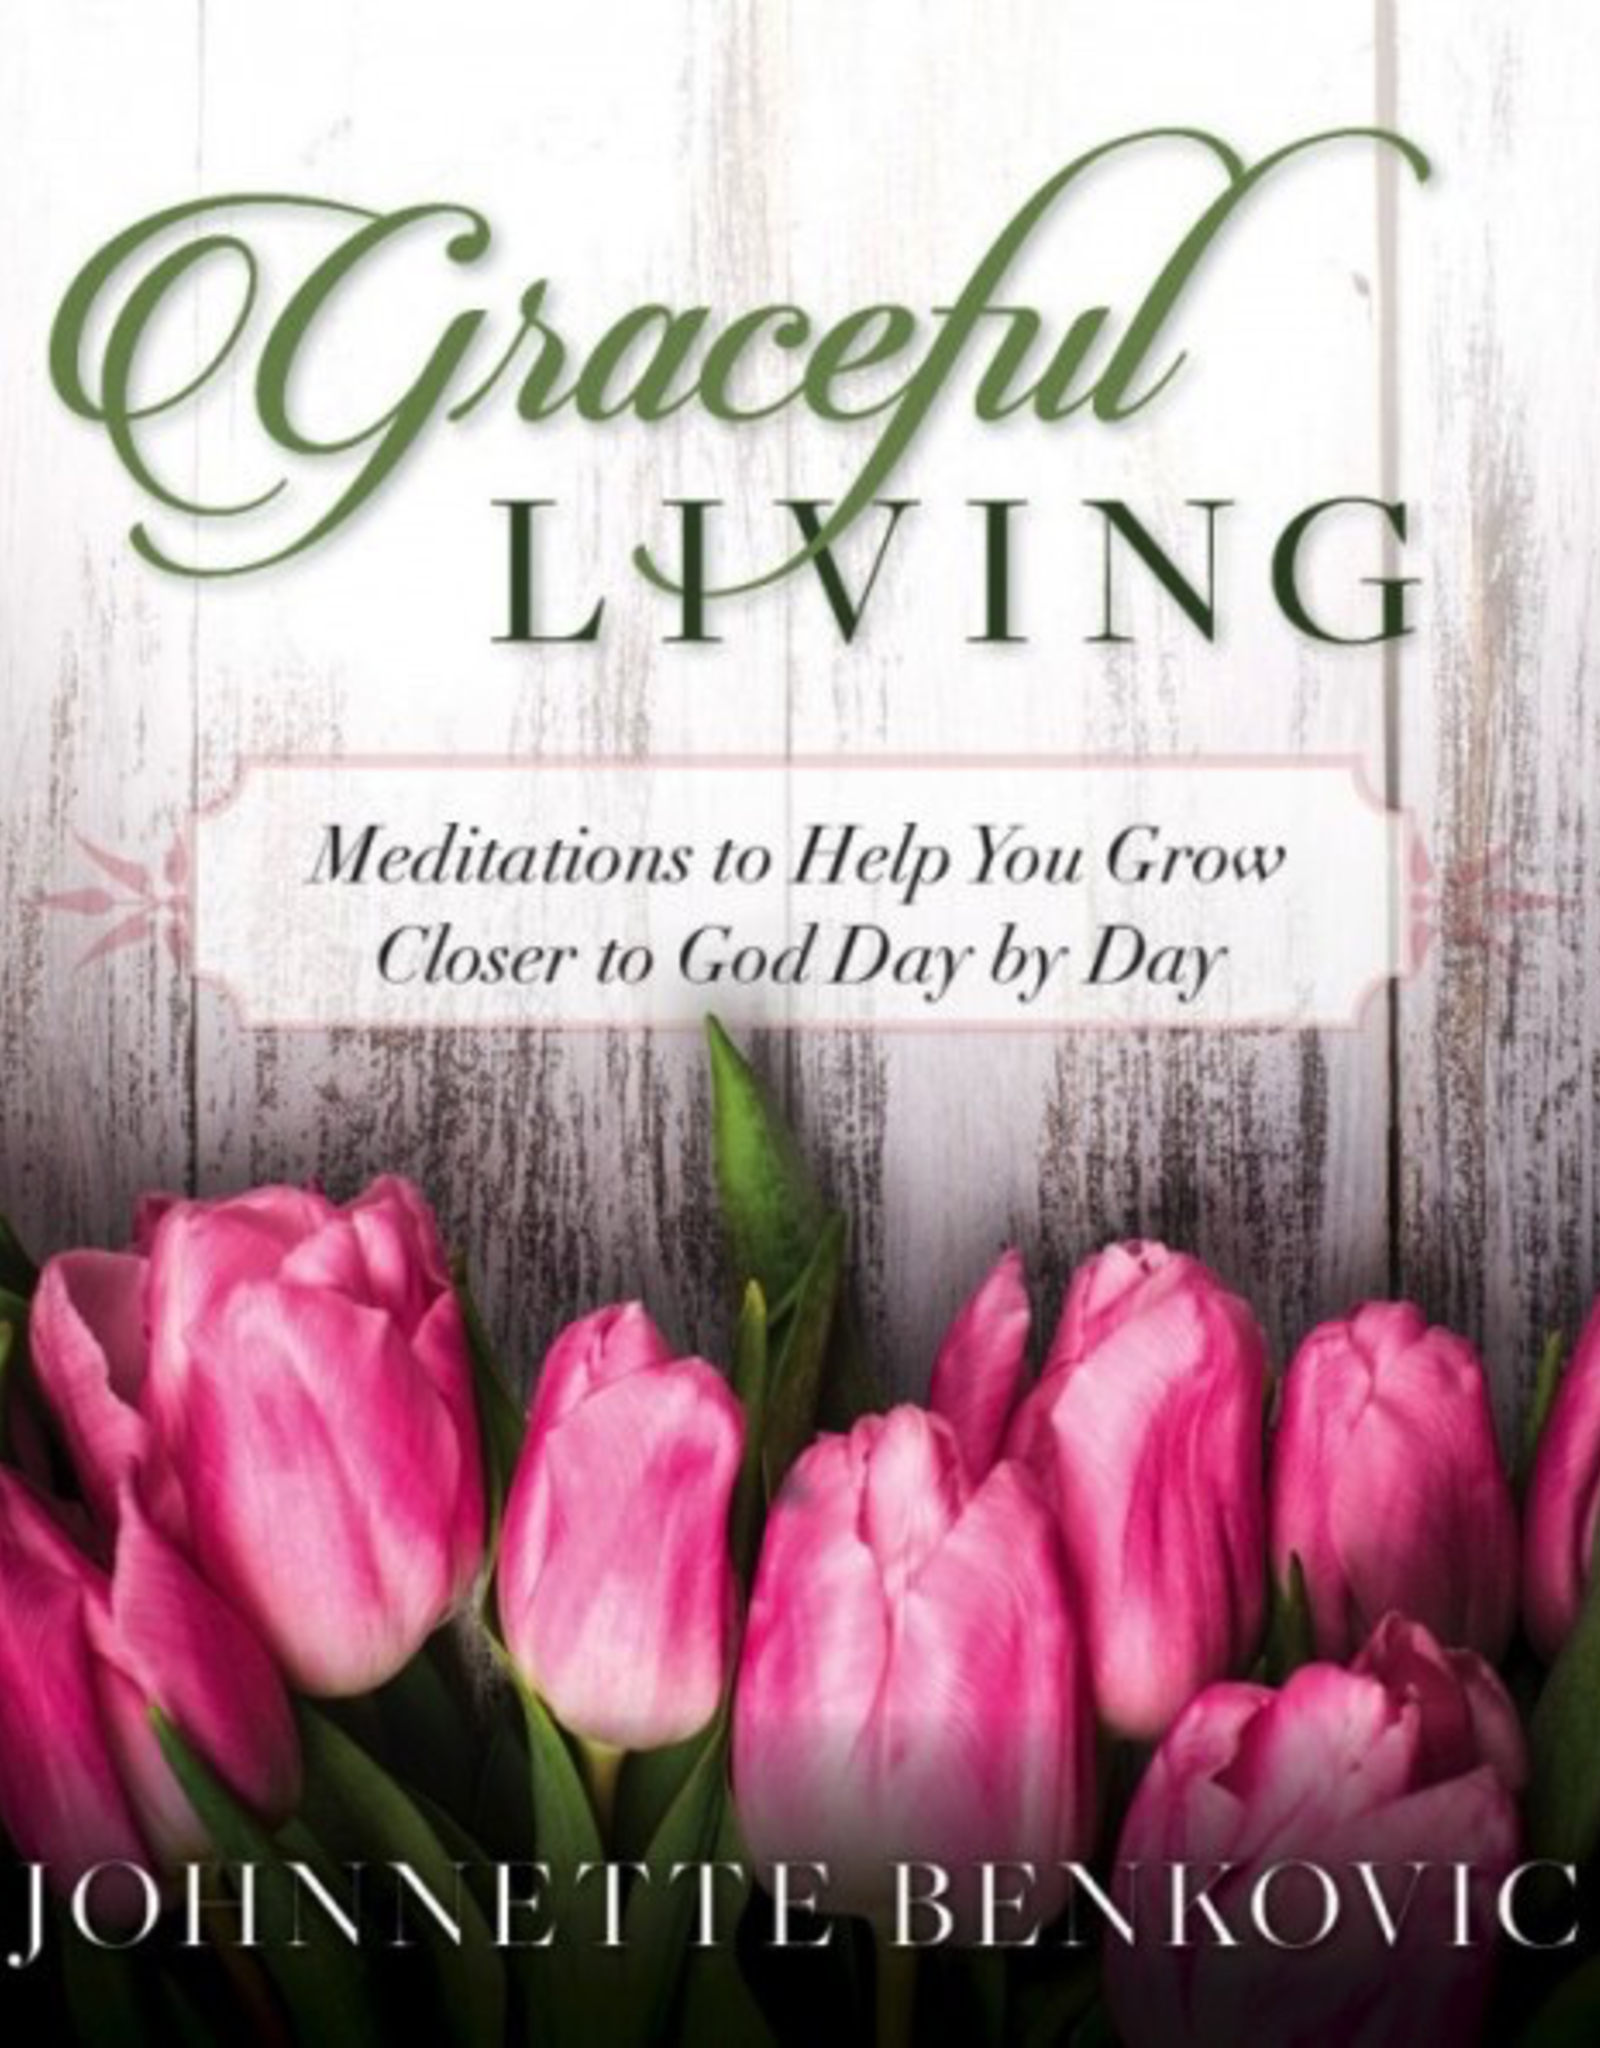 Sophia Institute Graceful Living:  Meditations to Help You Grow Closer to God Day by Day